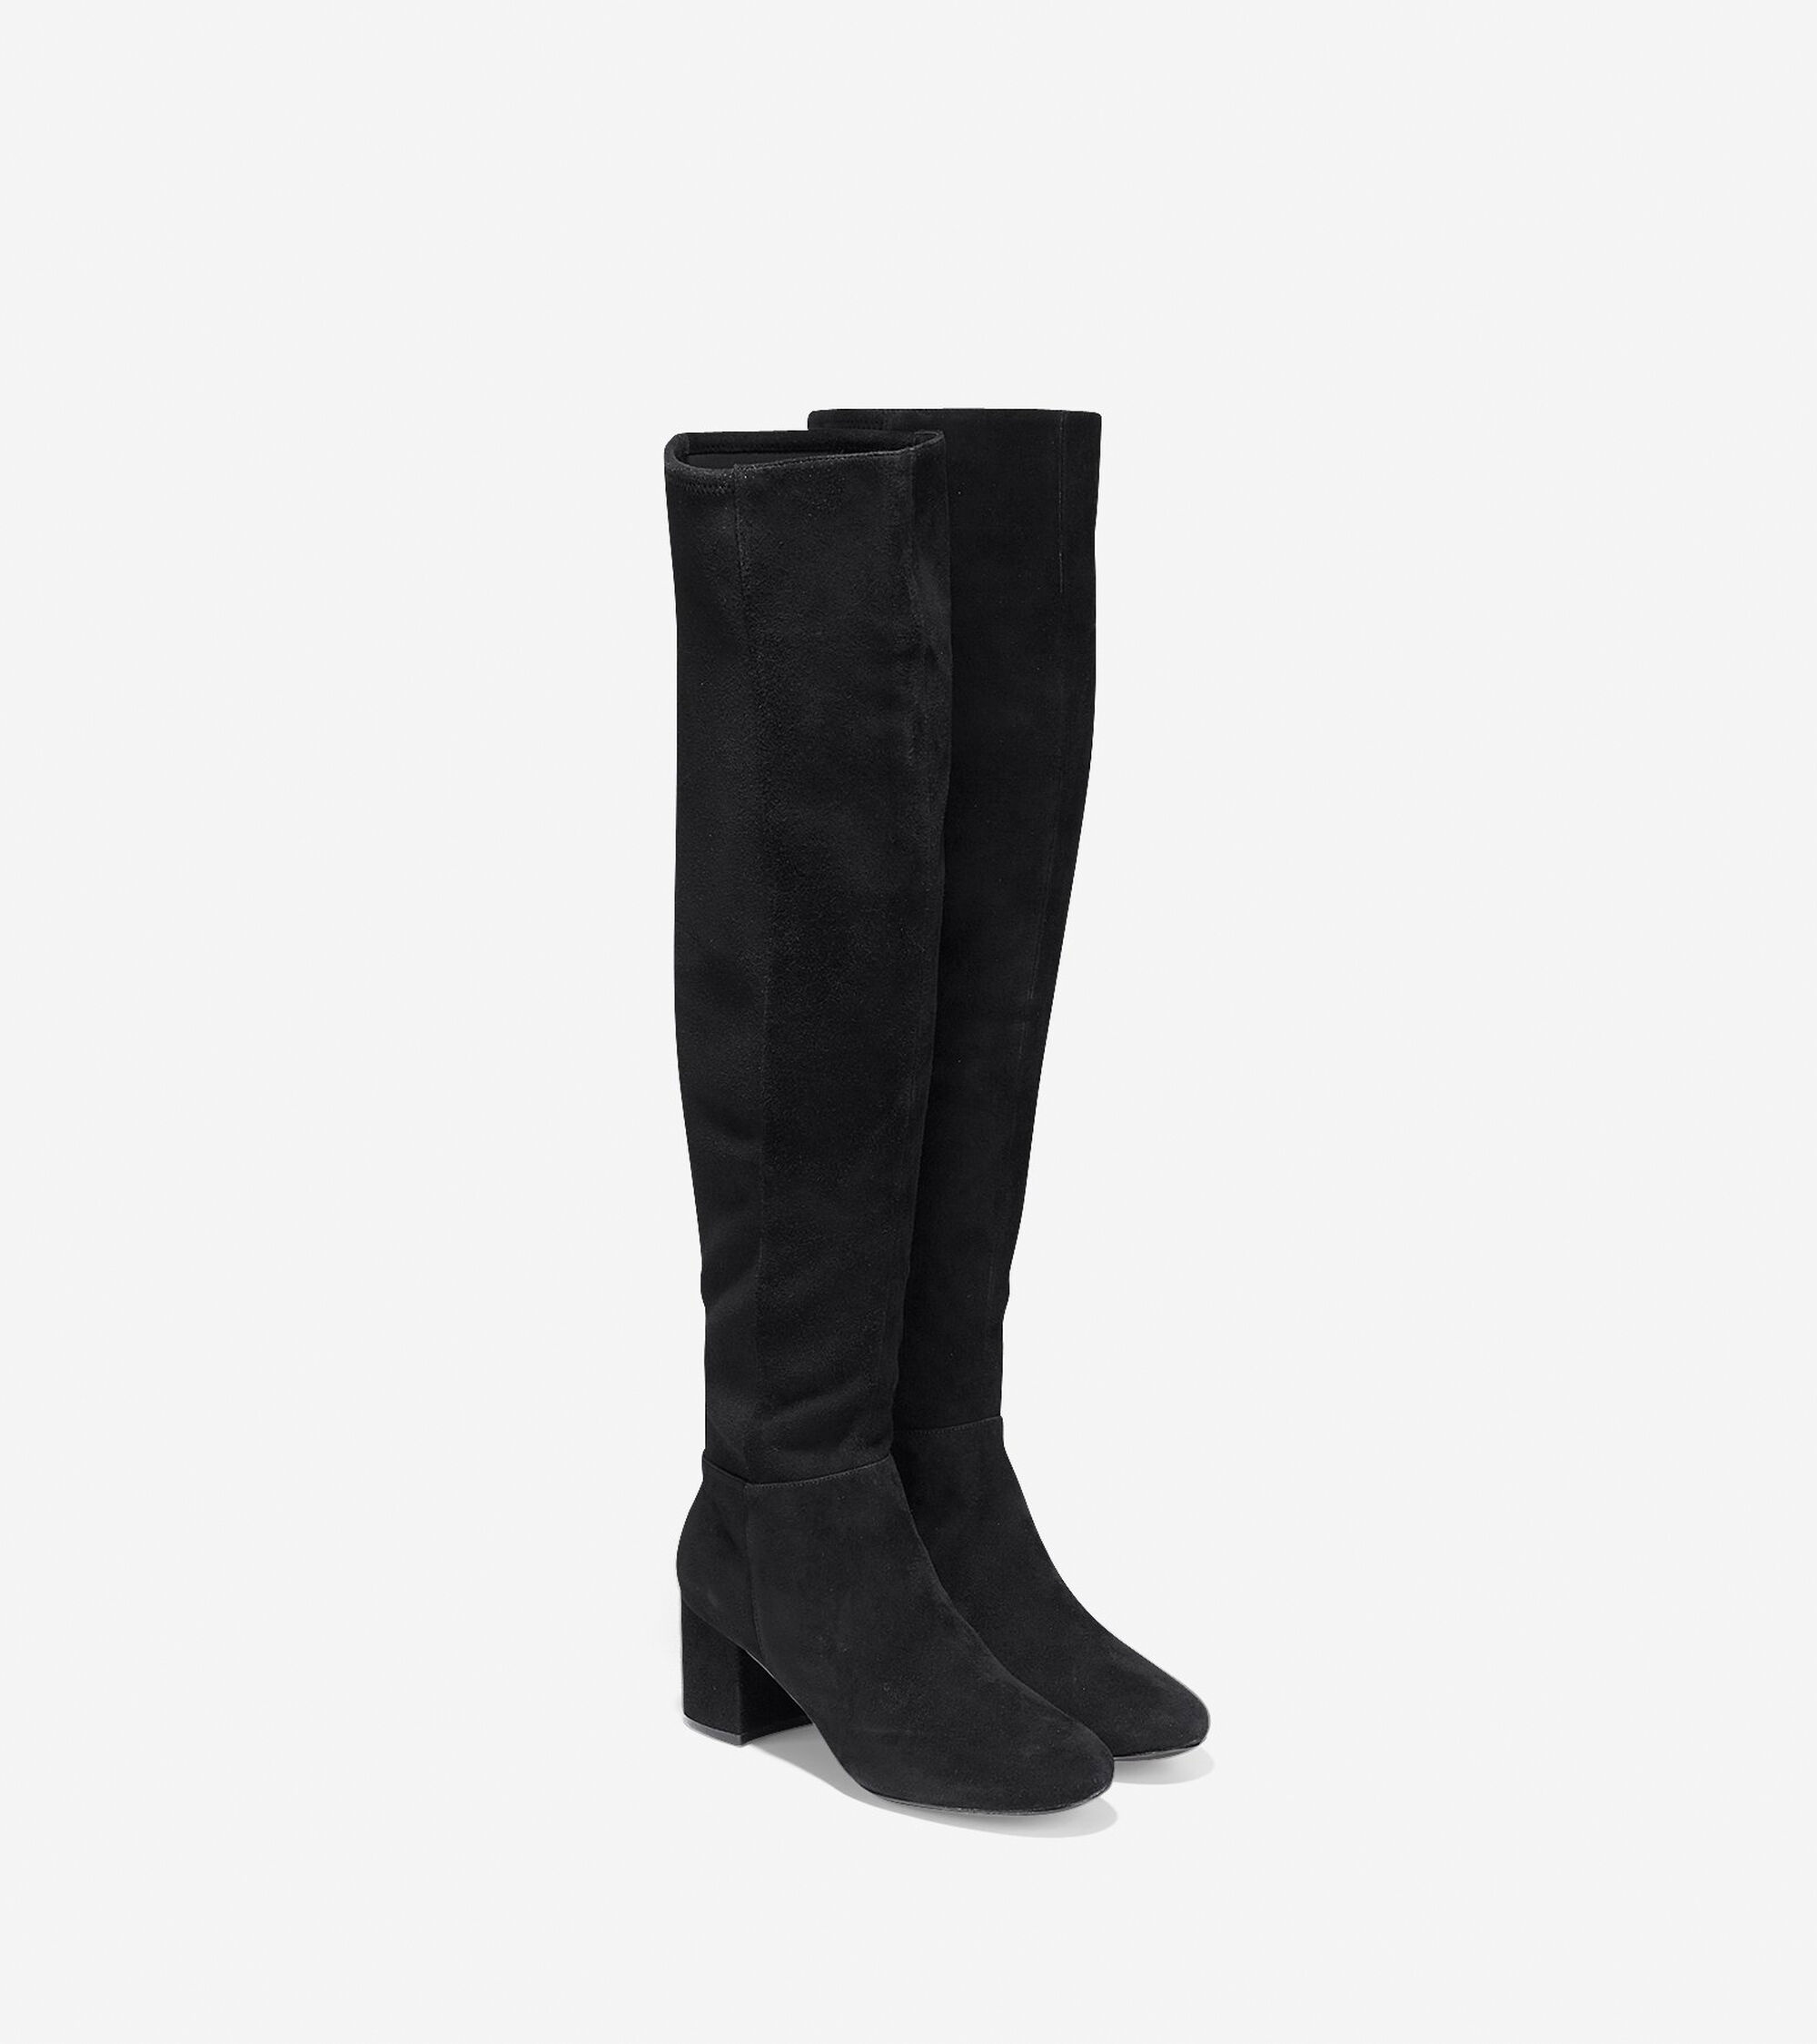 5bdbf5f83f2 Women s Elnora Over The Knee Boots 60mm in Black